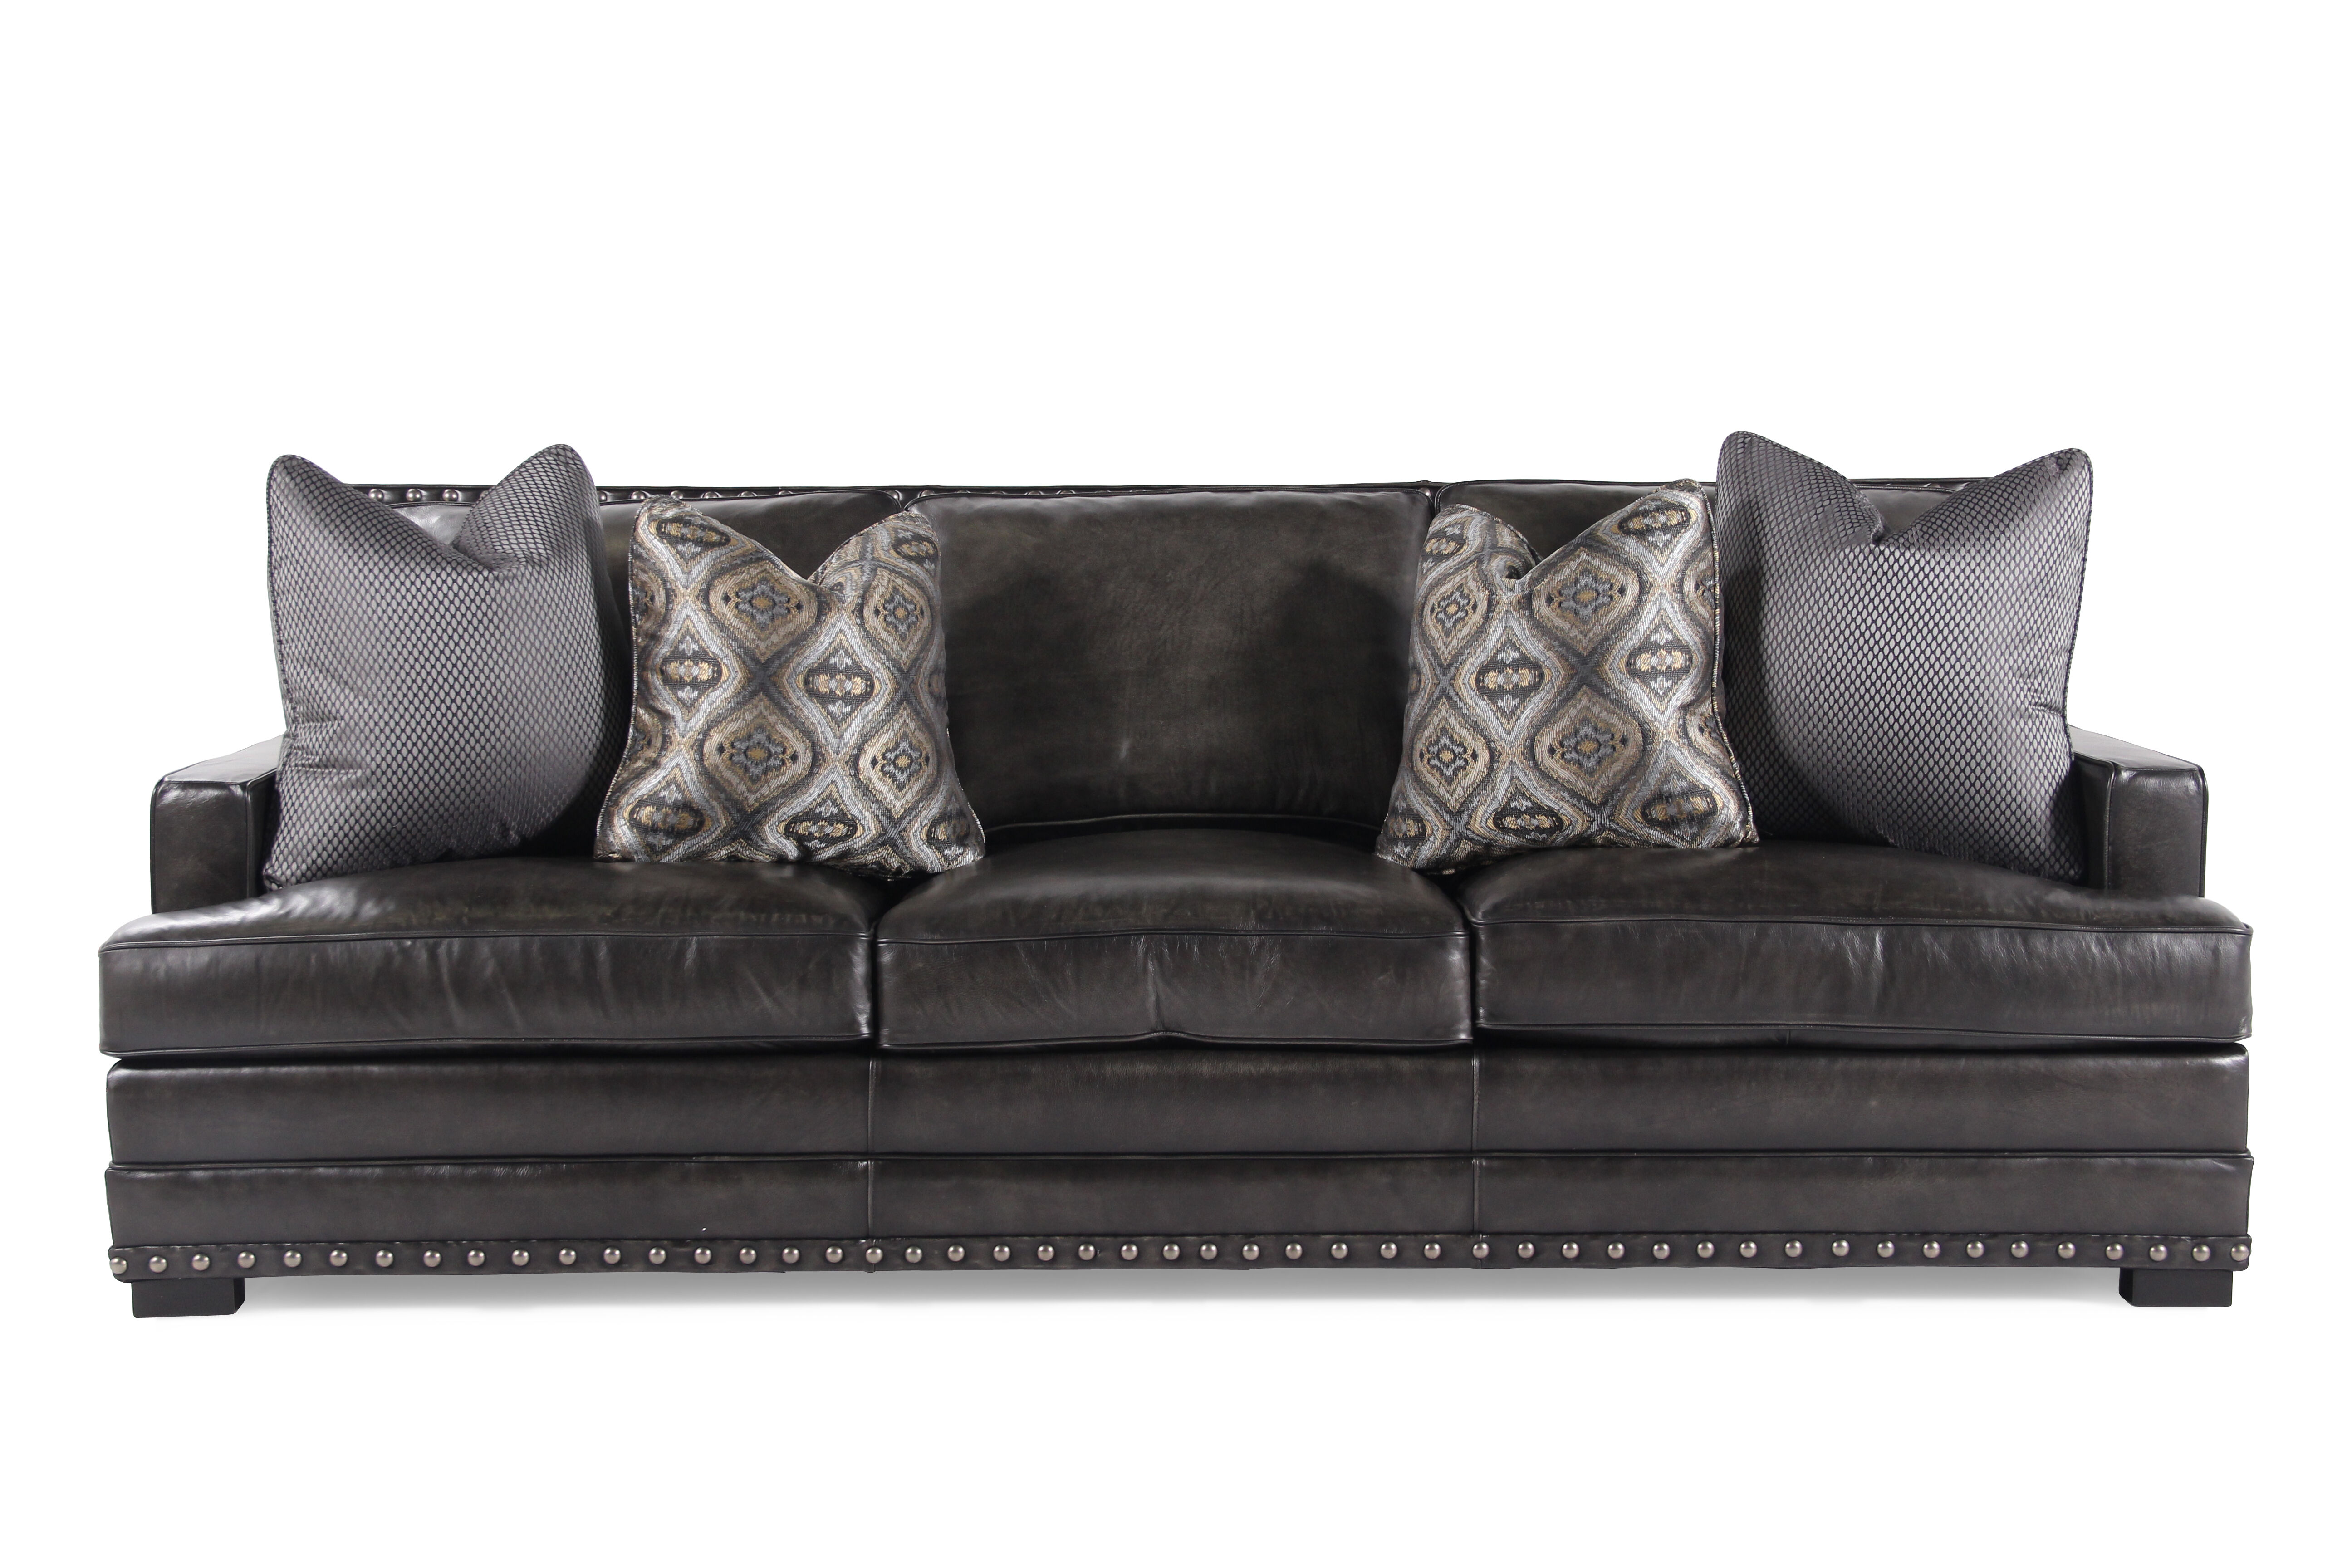 NailheadAccented Leather 94 Sofa in Graphite Mathis Brothers